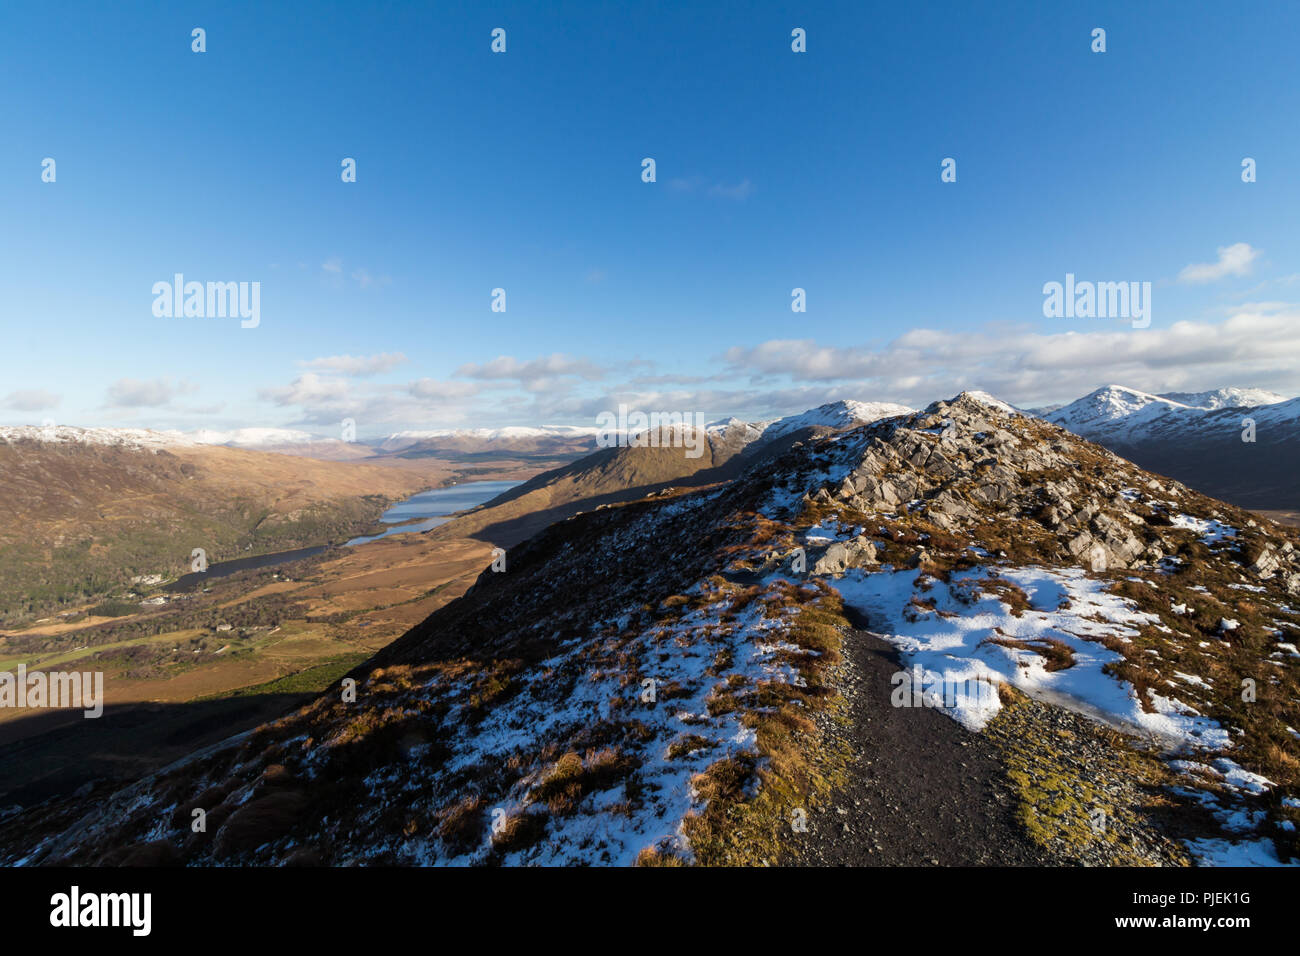 Summit of Diamond Hill in Connemara National Park in winter overlooking Kylemore Abbey and Kylemore Lough on left and the snowcapped Twelve Bens. - Stock Image